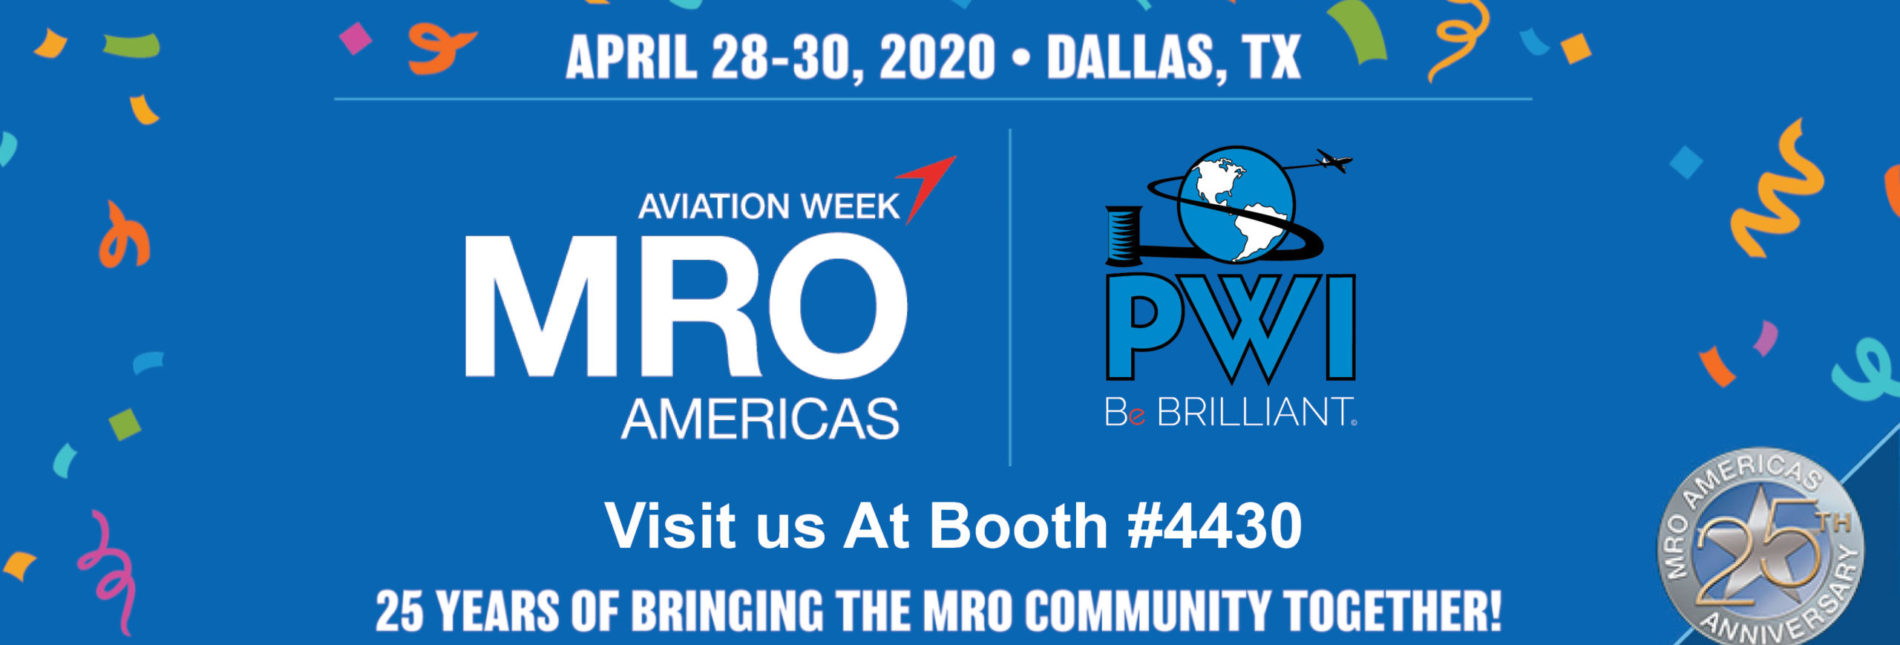 PWI at MRO show 2020